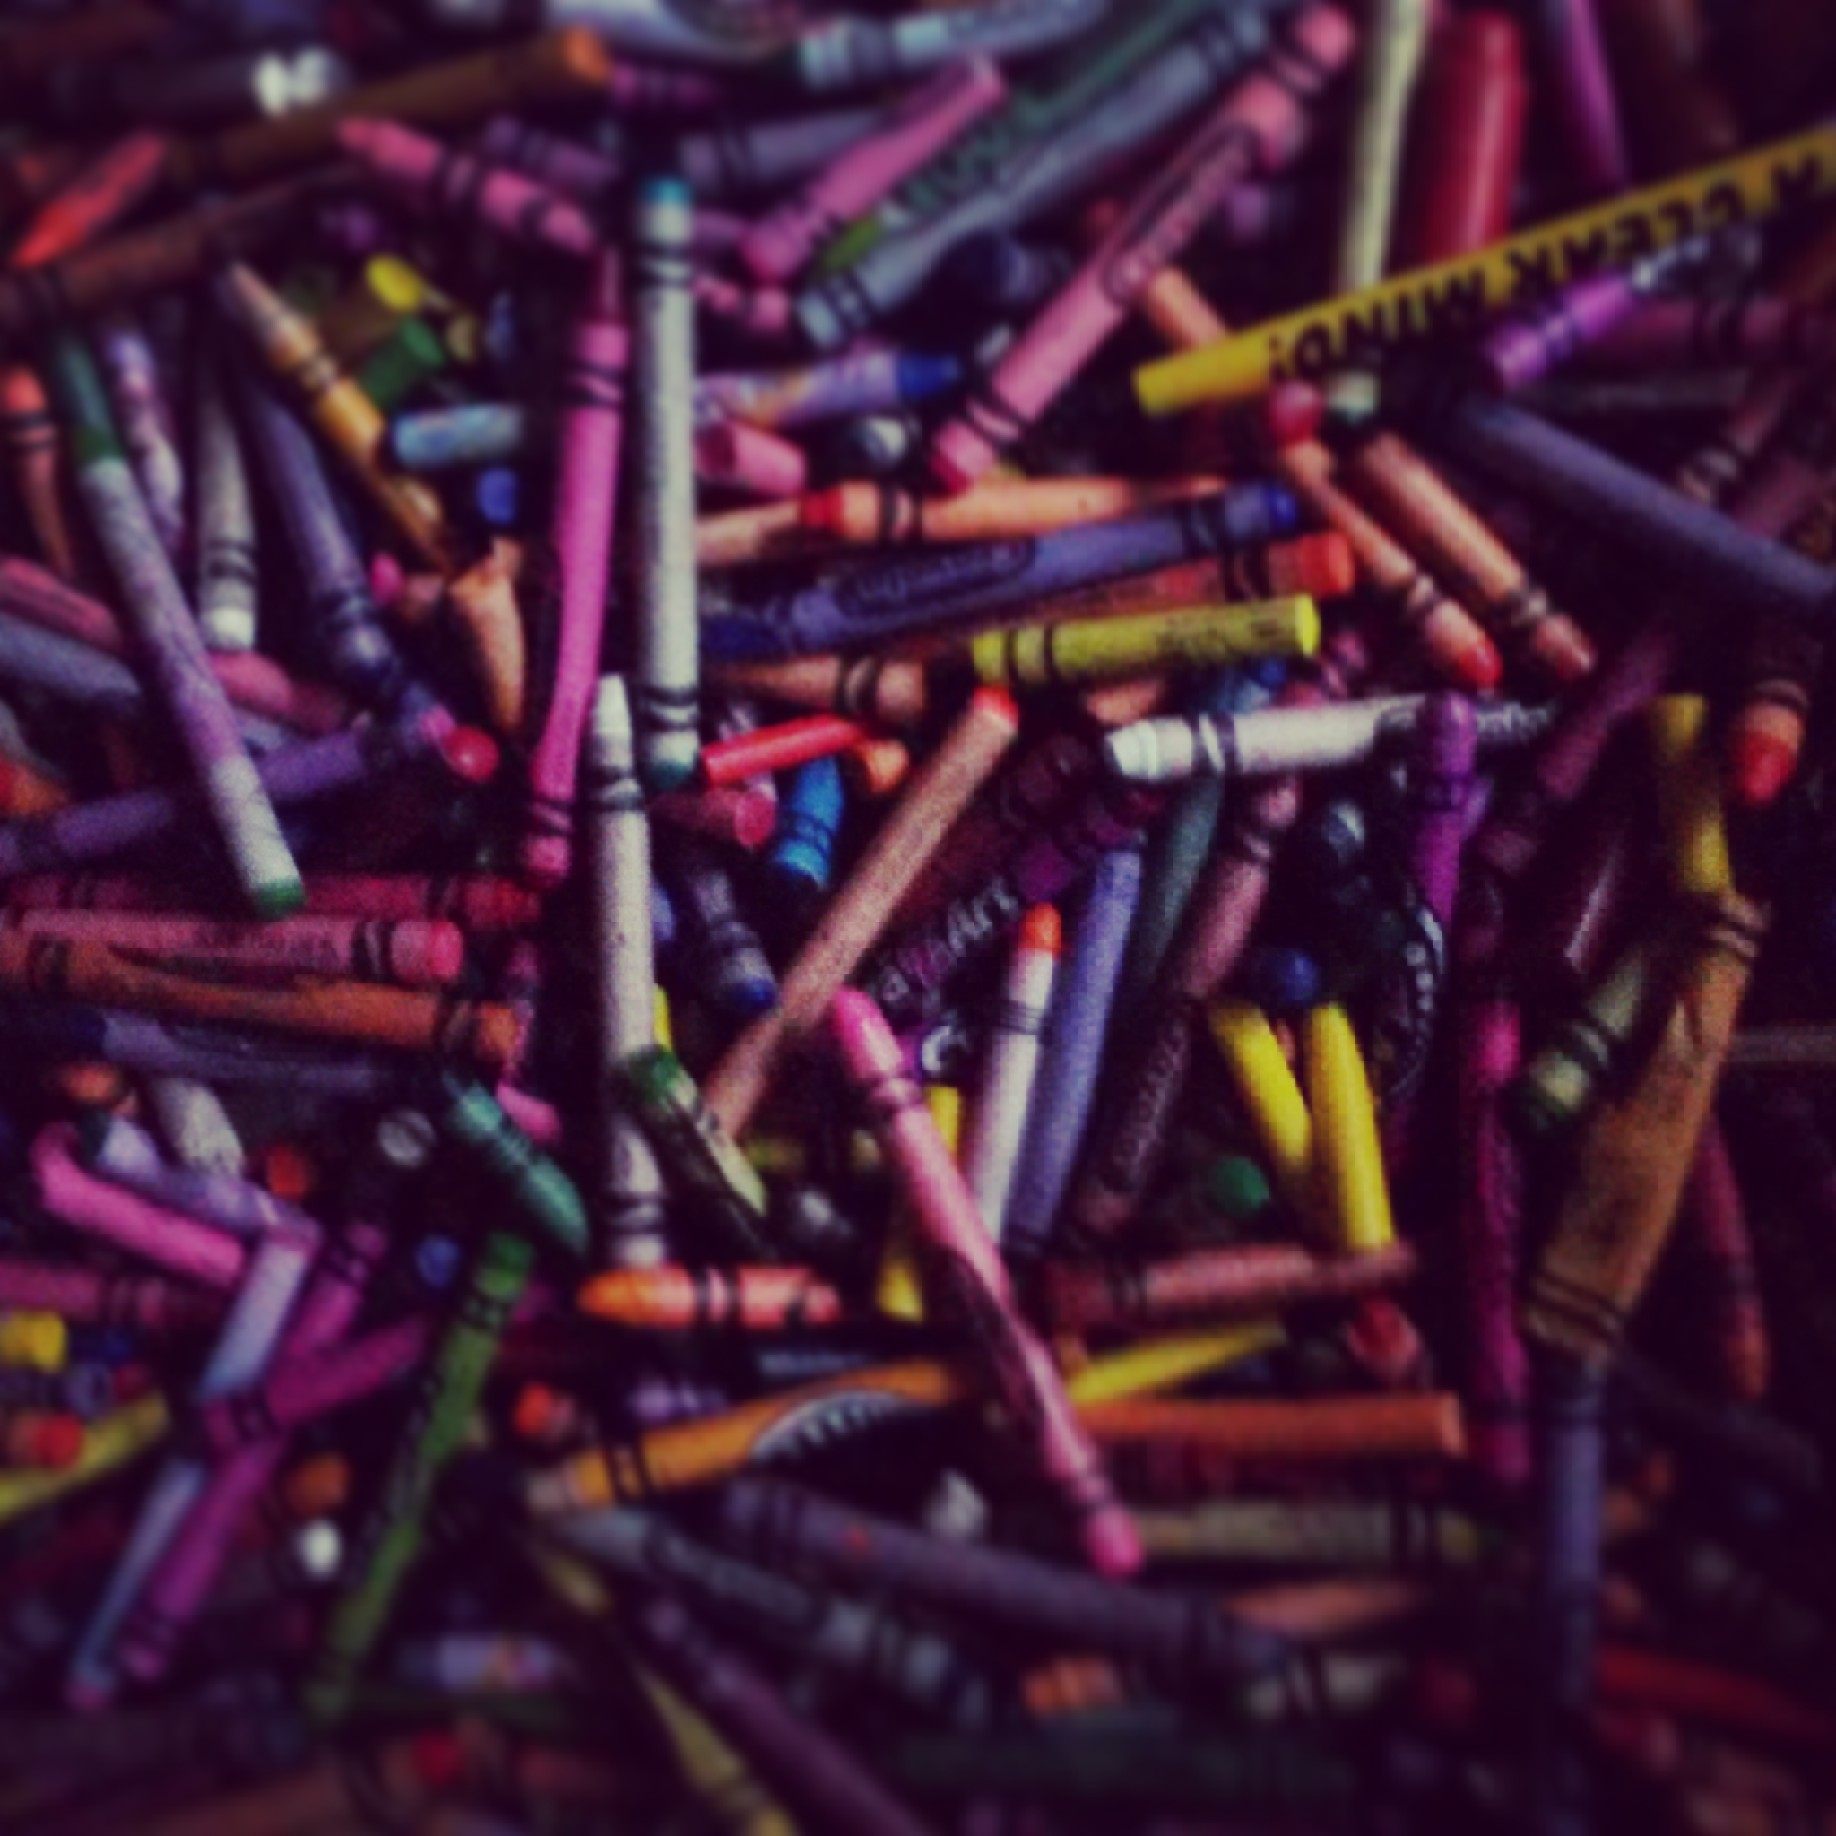 Picture of Preparing the Crayons for Melting